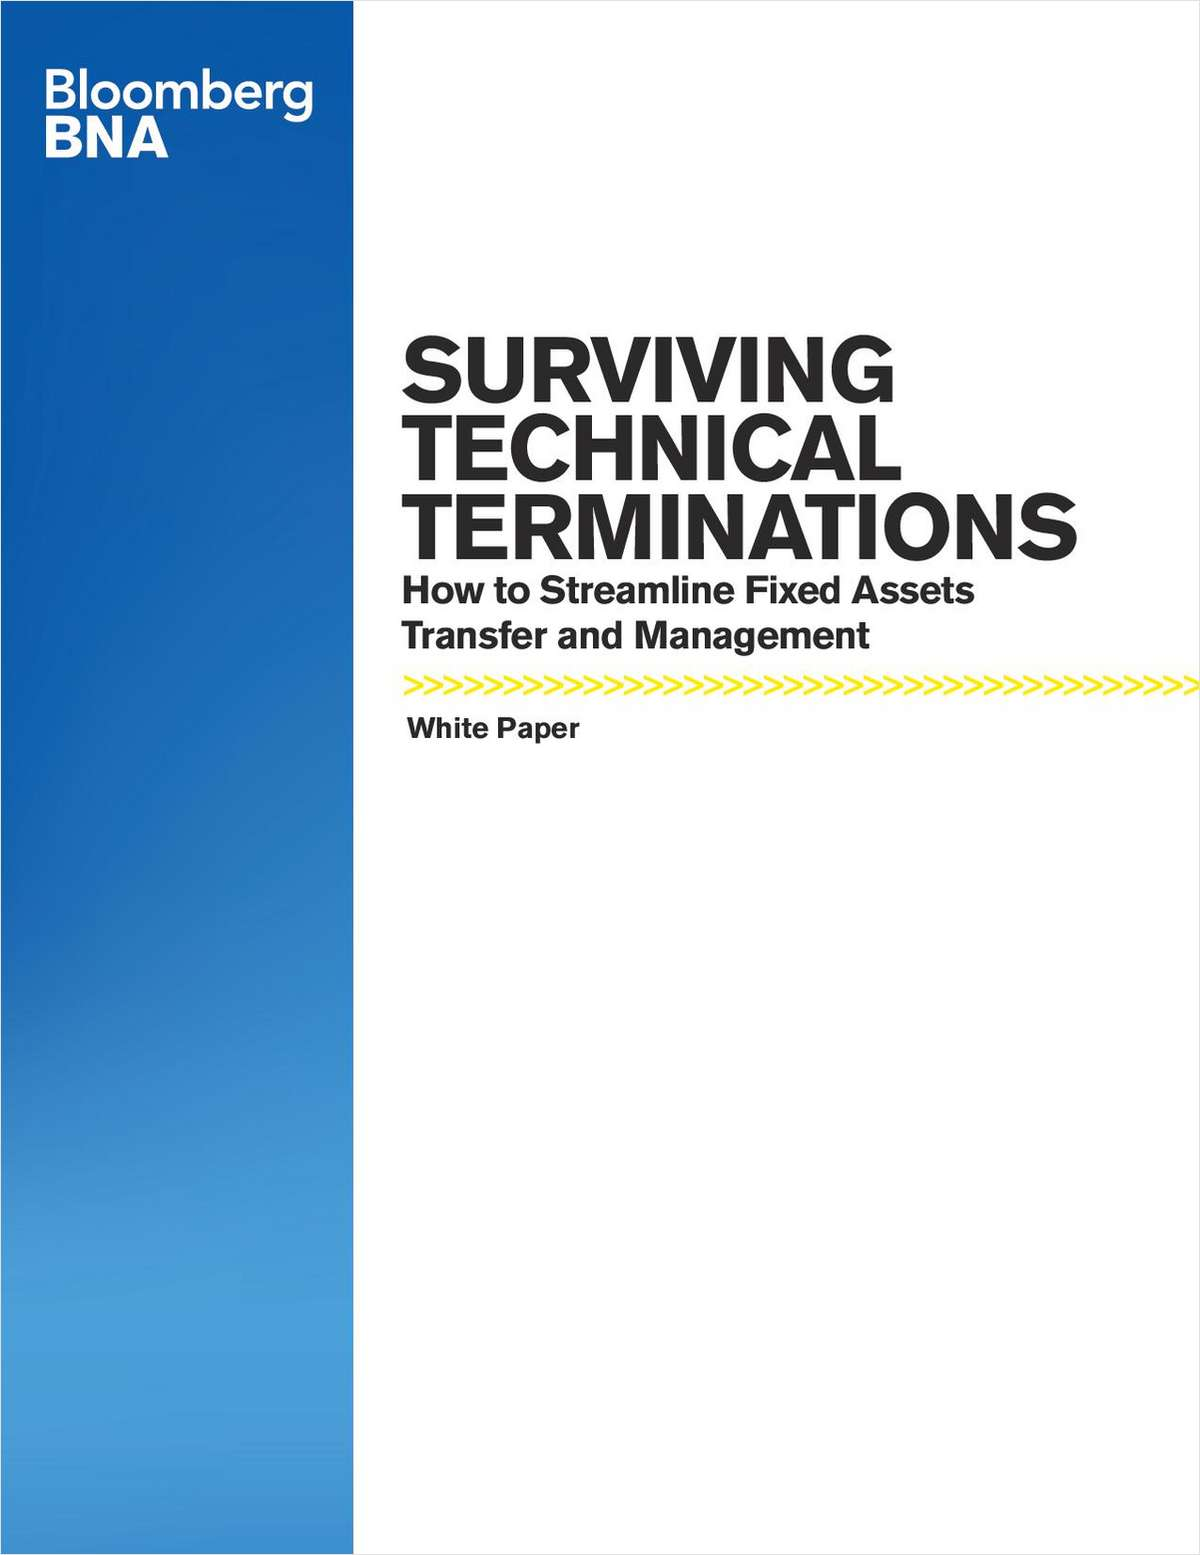 Surviving Technical Terminations